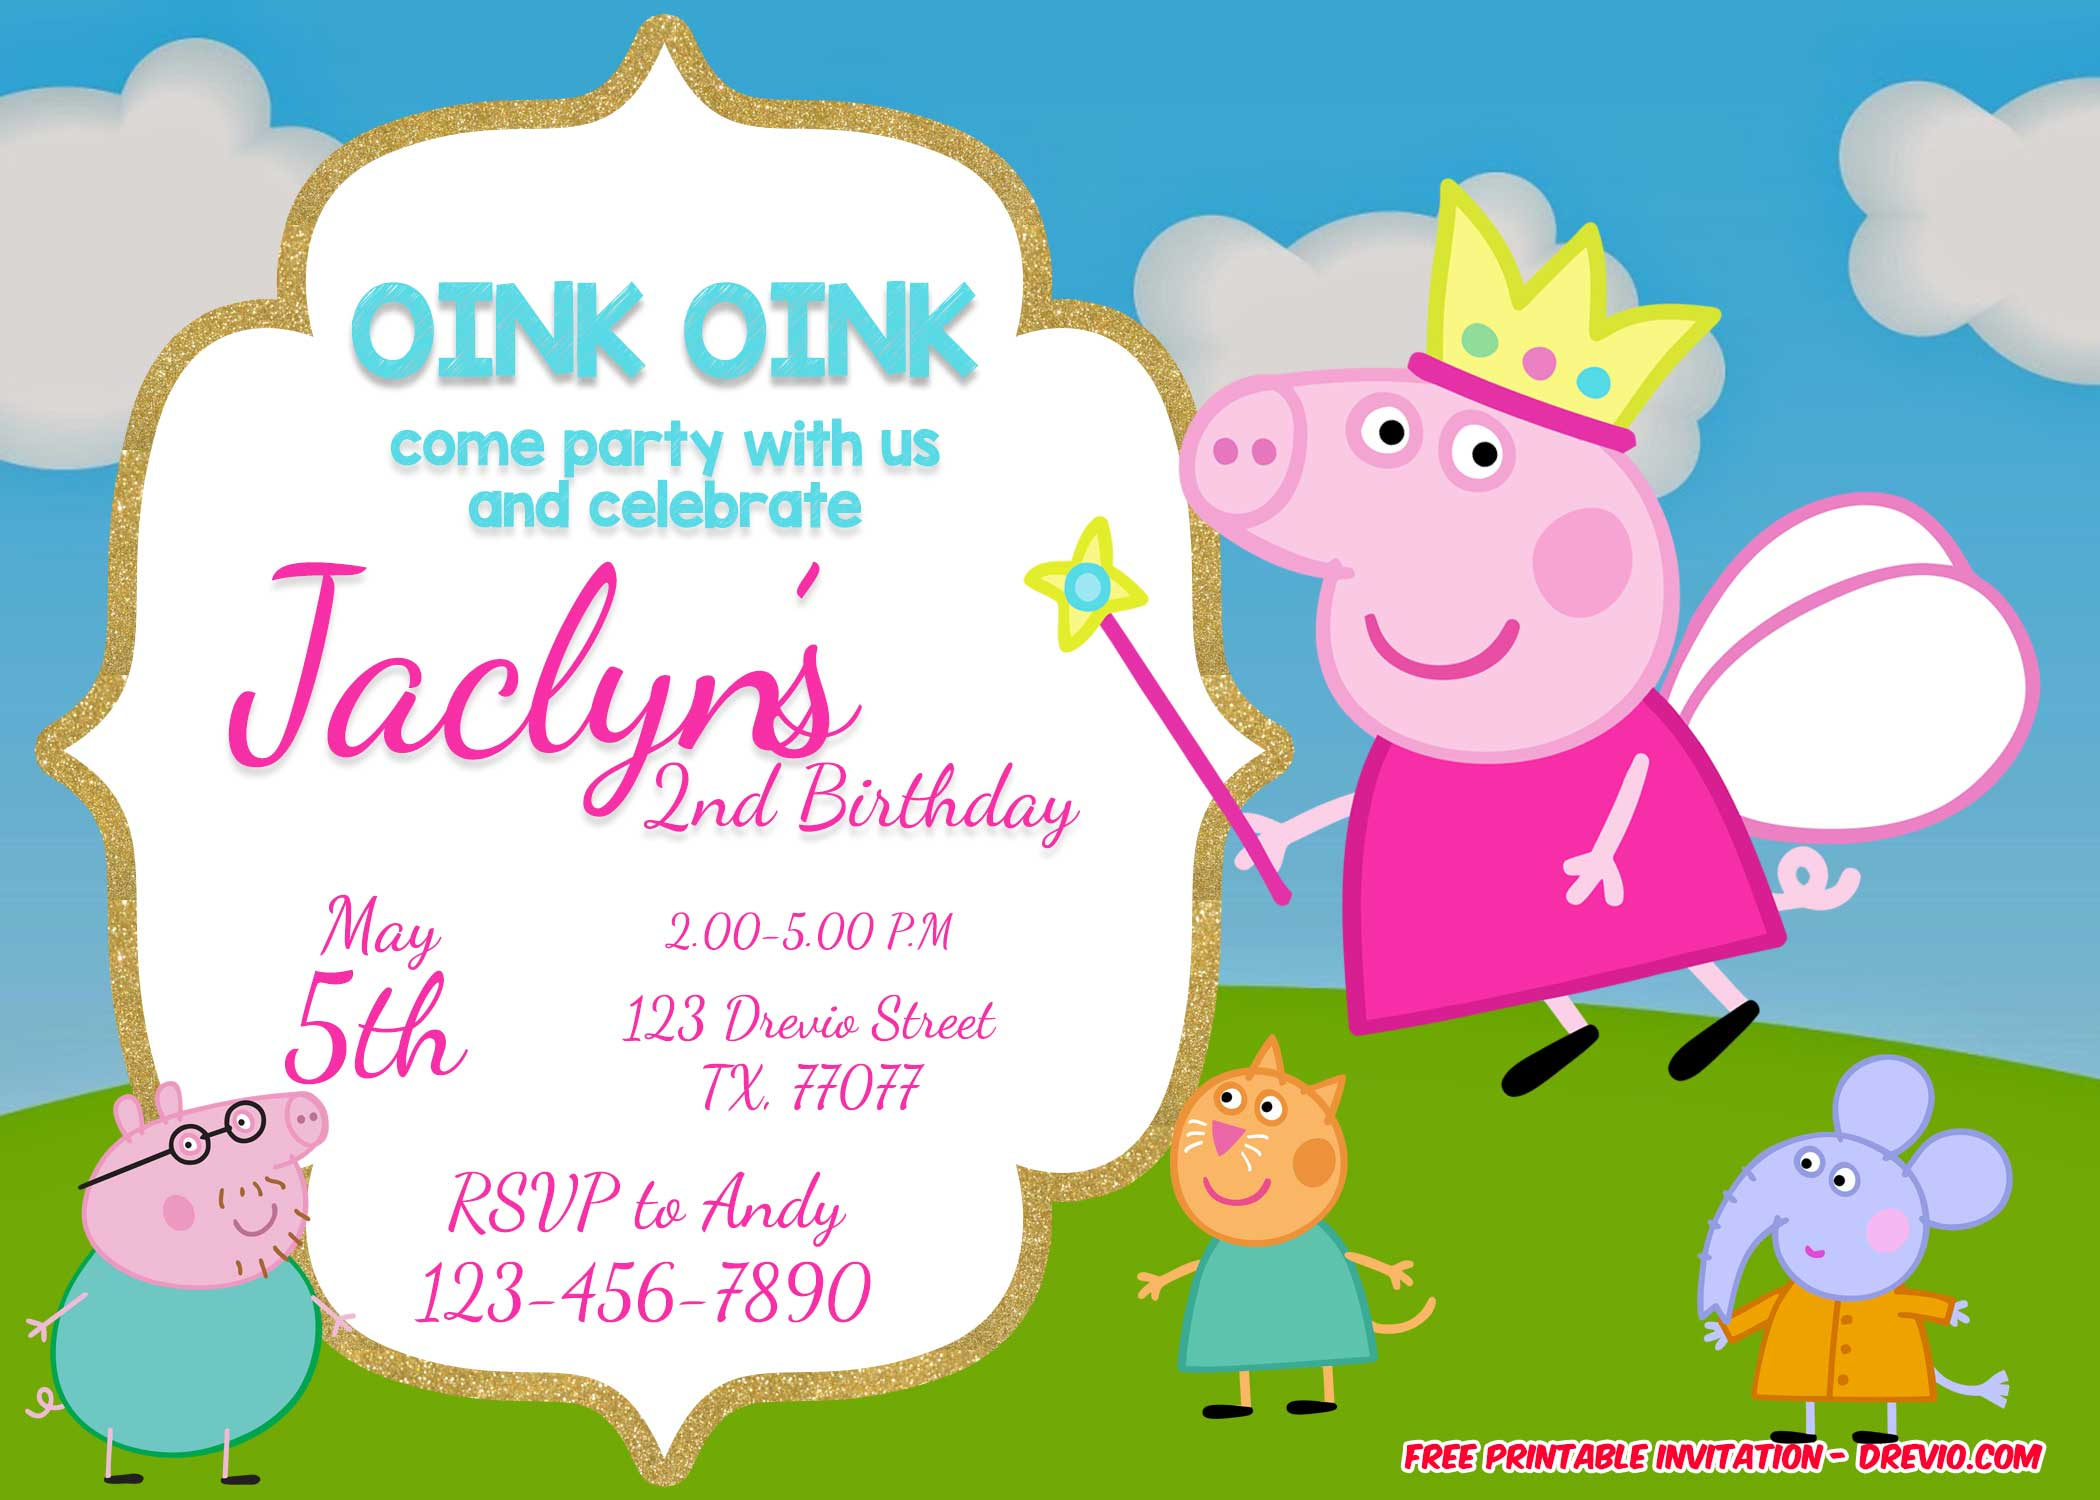 photograph about Peppa Pig Printable known as Free of charge Printable Peppa Pig Invitation Birthday Templates